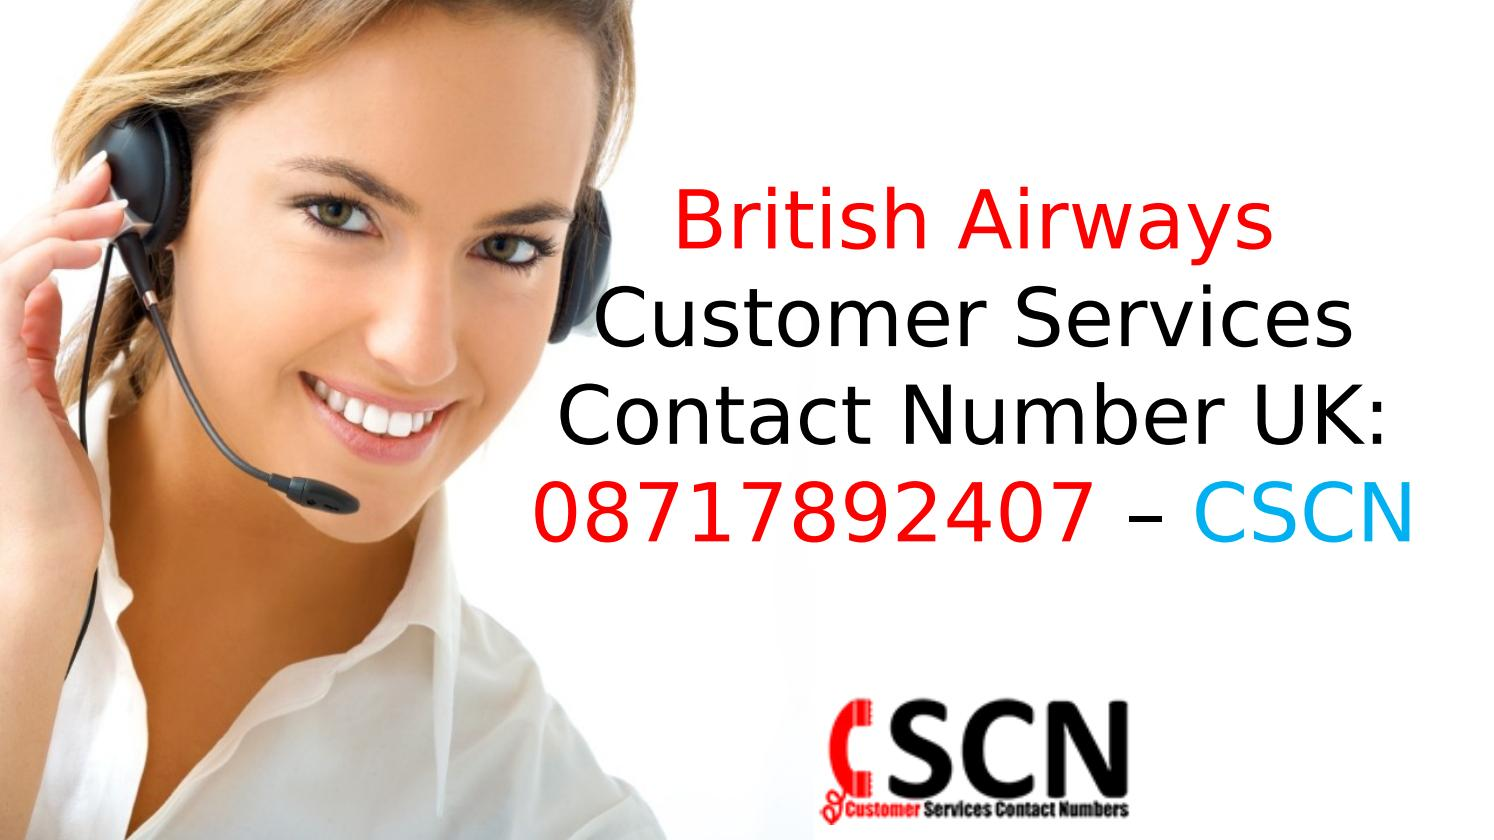 british airways customer service British airways wwwbritishairwayscom is a publicly traded company and is the flag carrier for the united kingdom revenues in 2013 were reported as over euro 11 billion and its fleet over 290 strong.